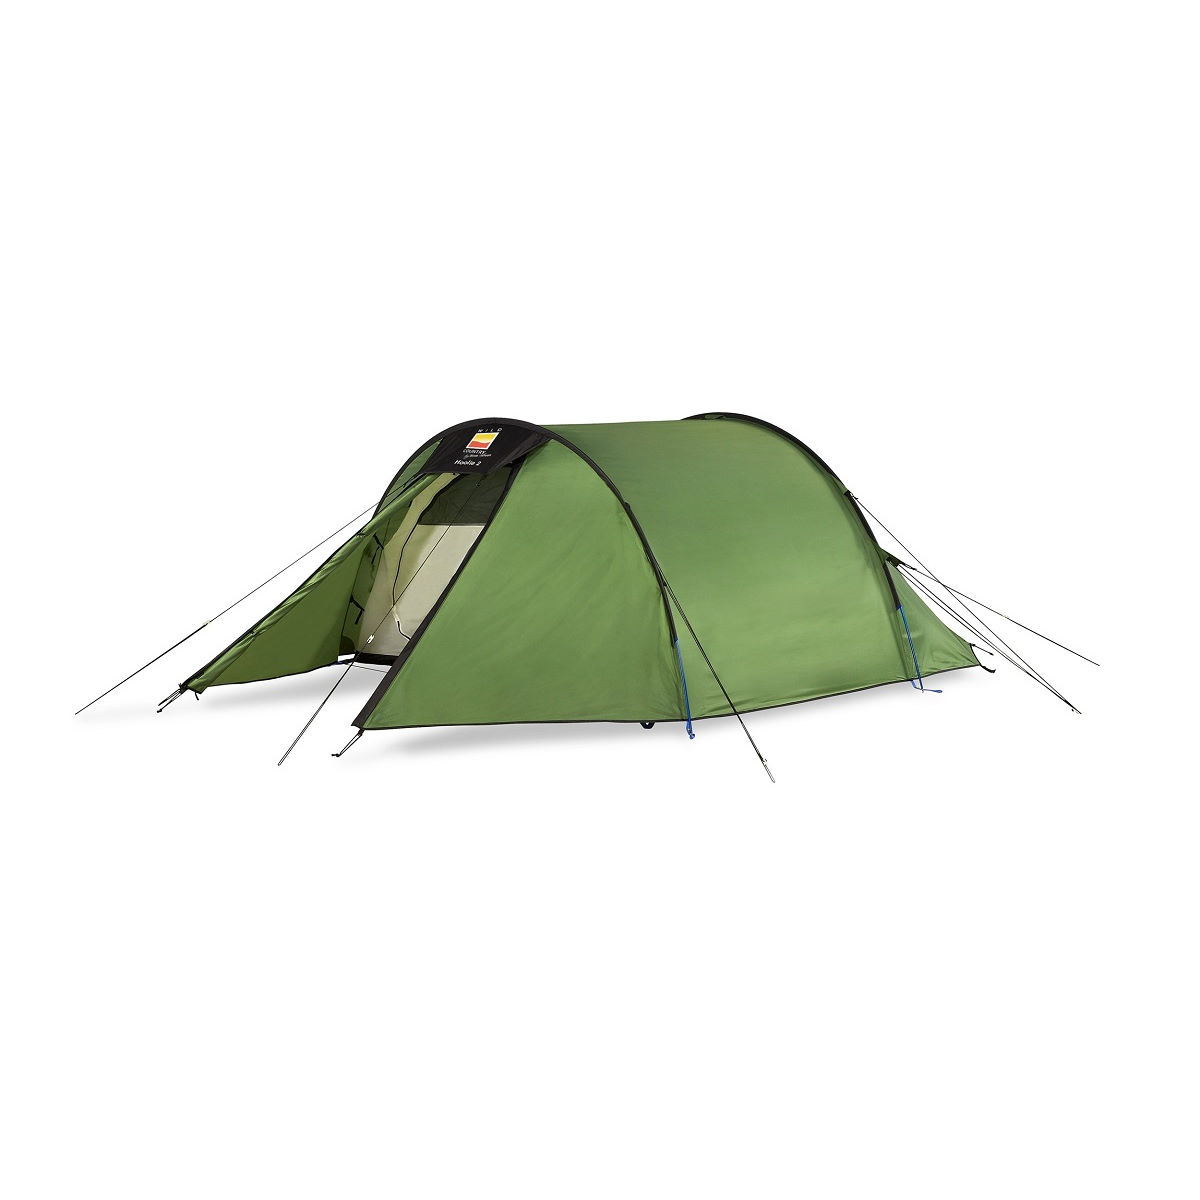 Wild Country Wild Country Hoolie 2 Tent   Tents